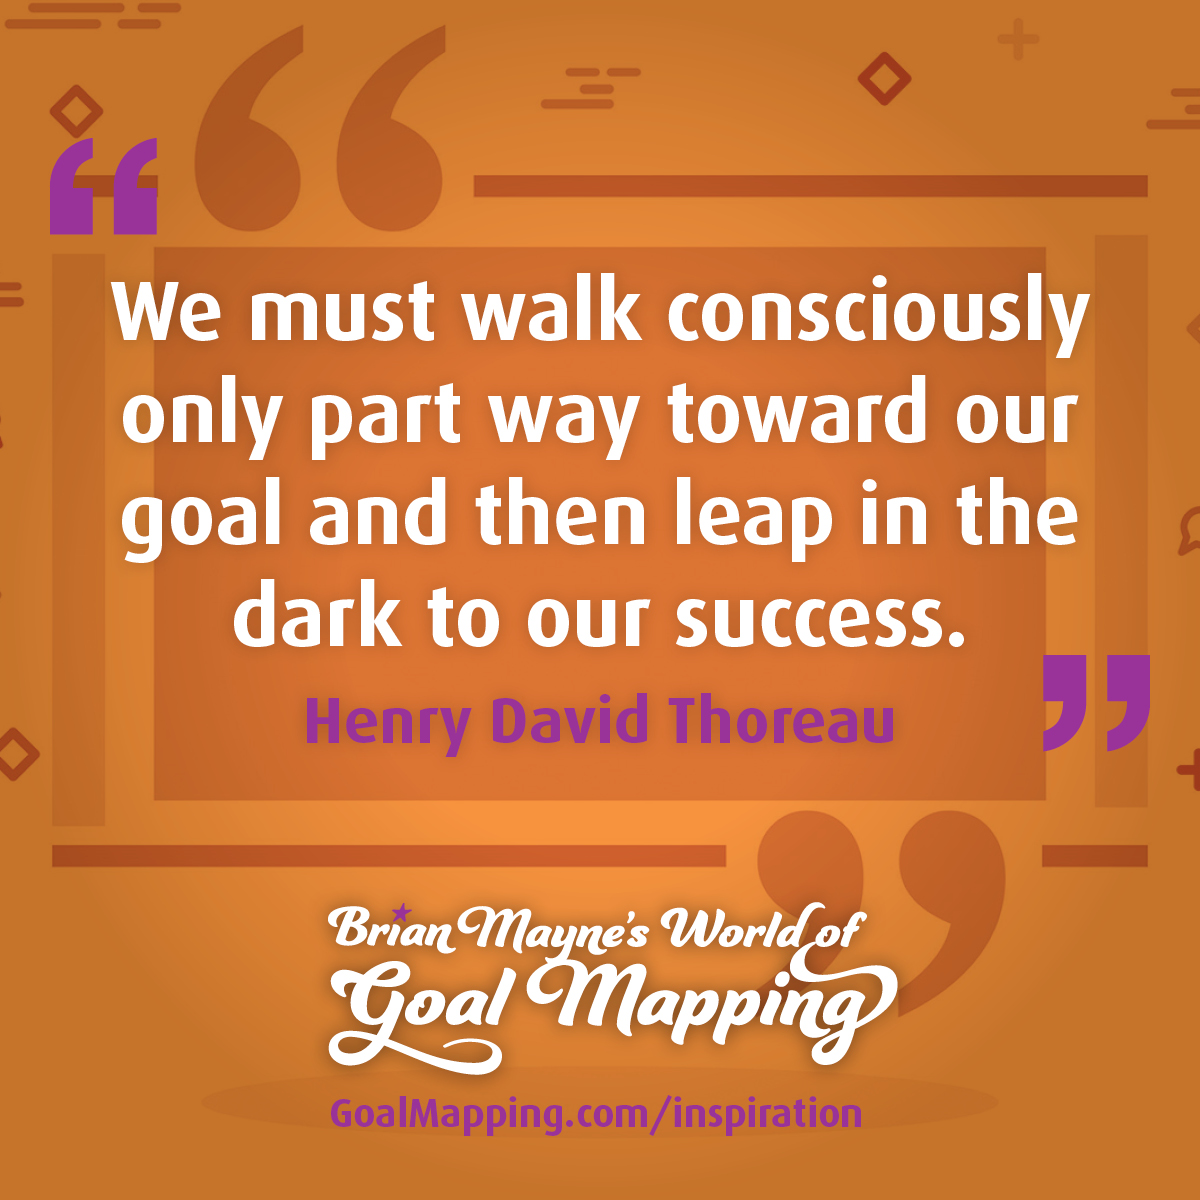 """We must walk consciously only part way toward our goal and then leap in the dark to our success."" Henry David Thoreau"